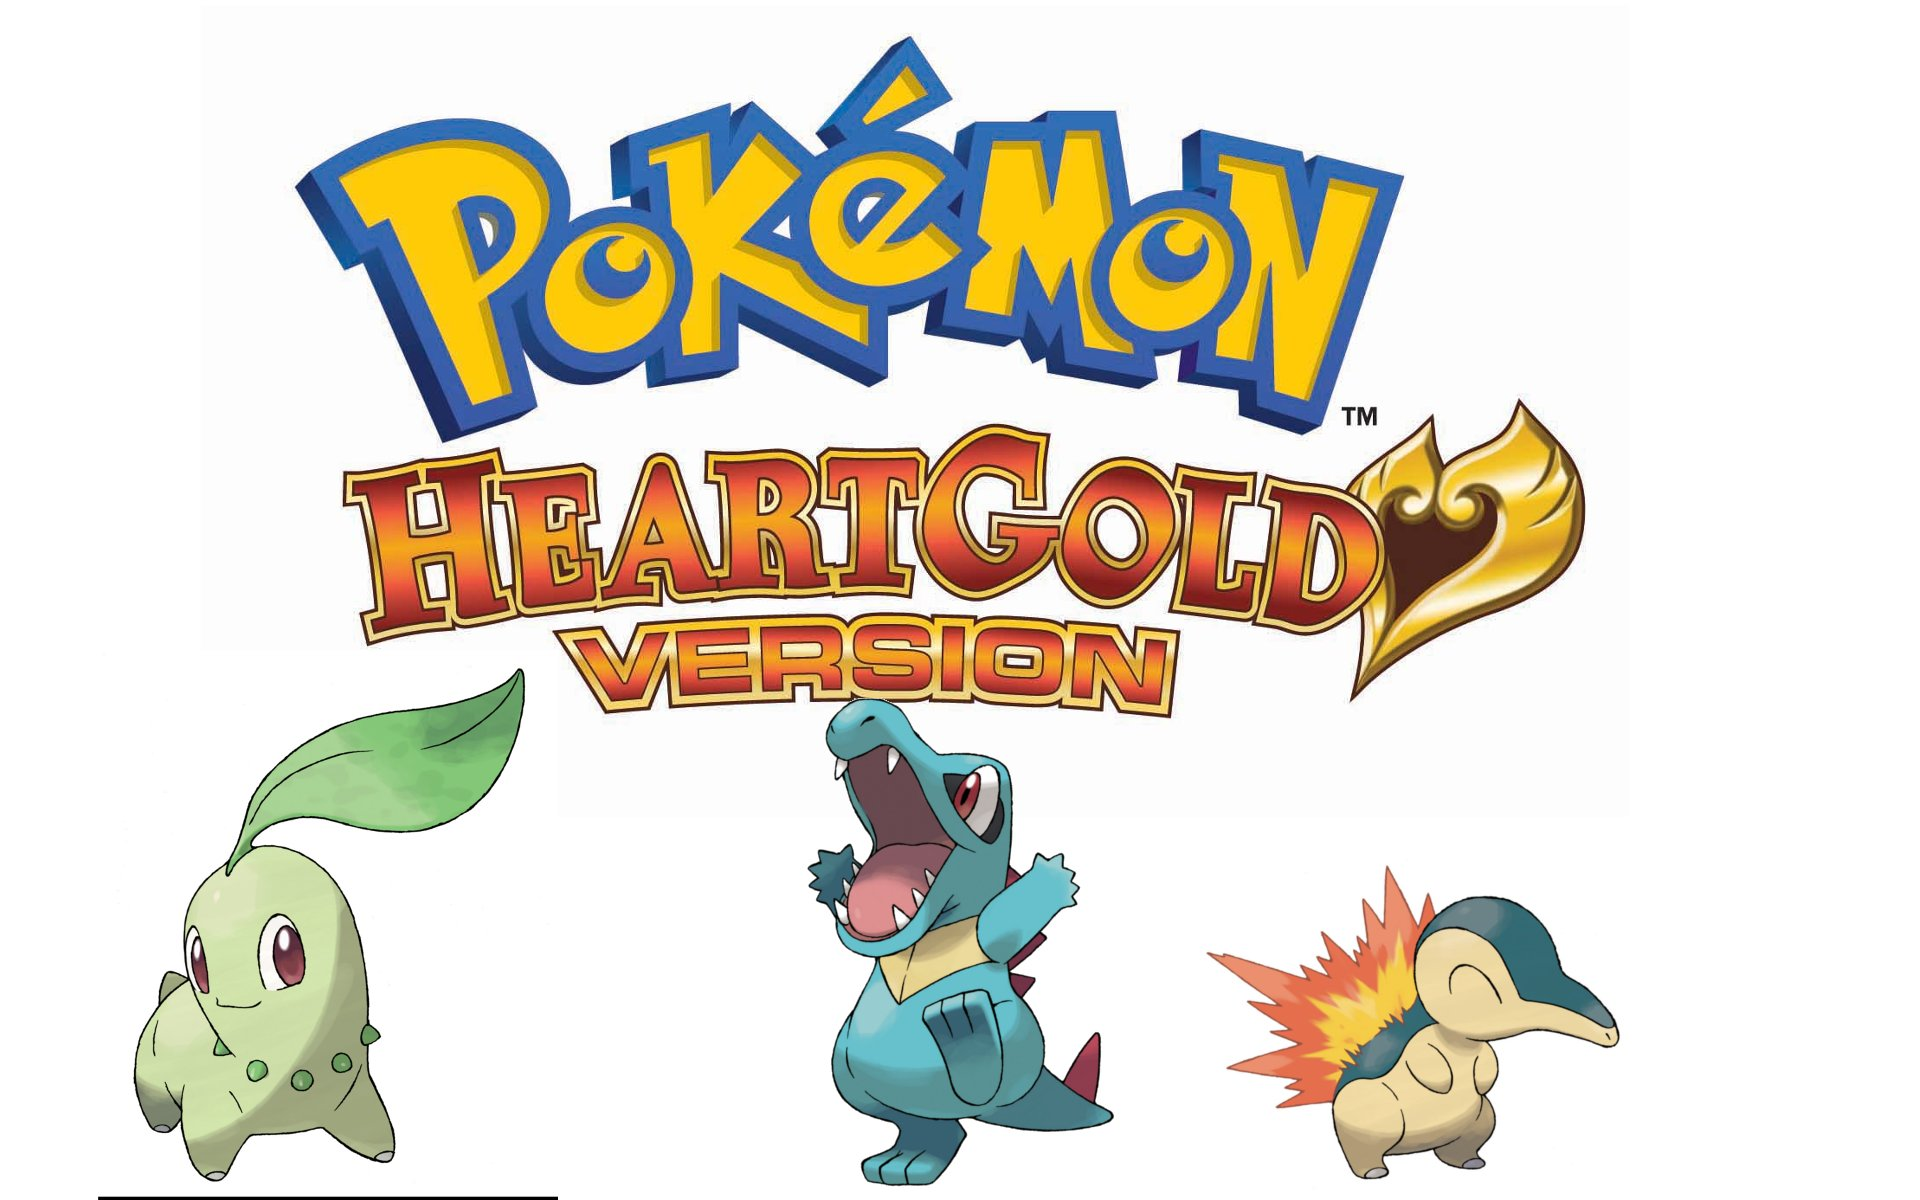 Pokemon HeartGold Soulsilver Versions Wallpaper Wii Play Games 1920x1200